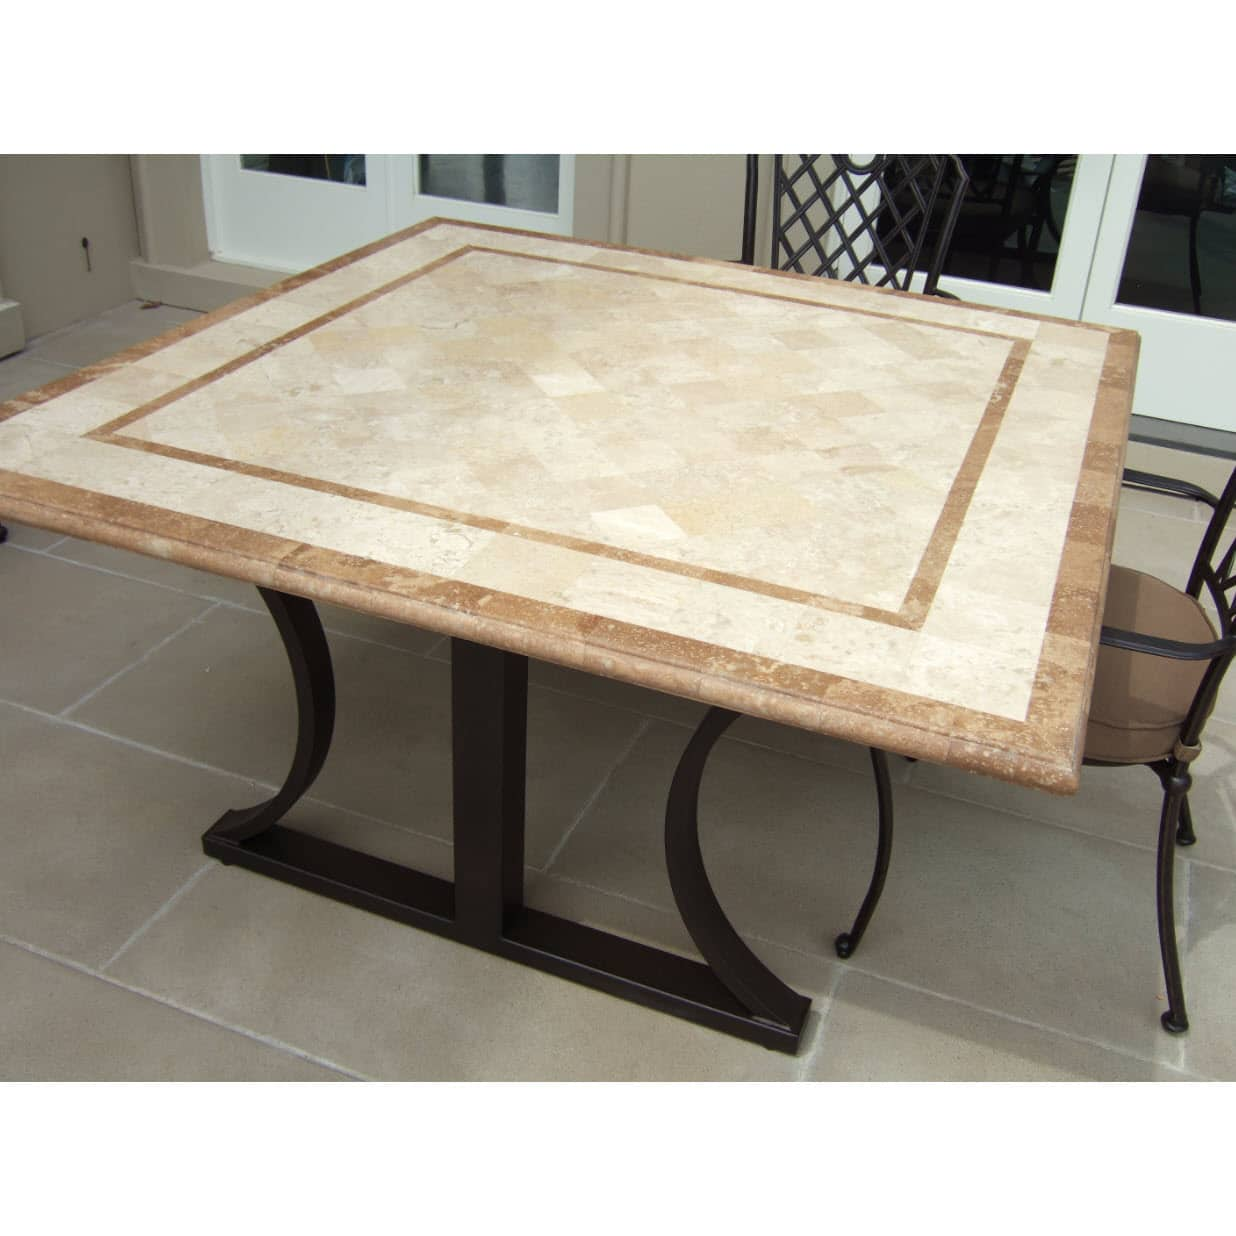 positano travertine stone table many sizes available